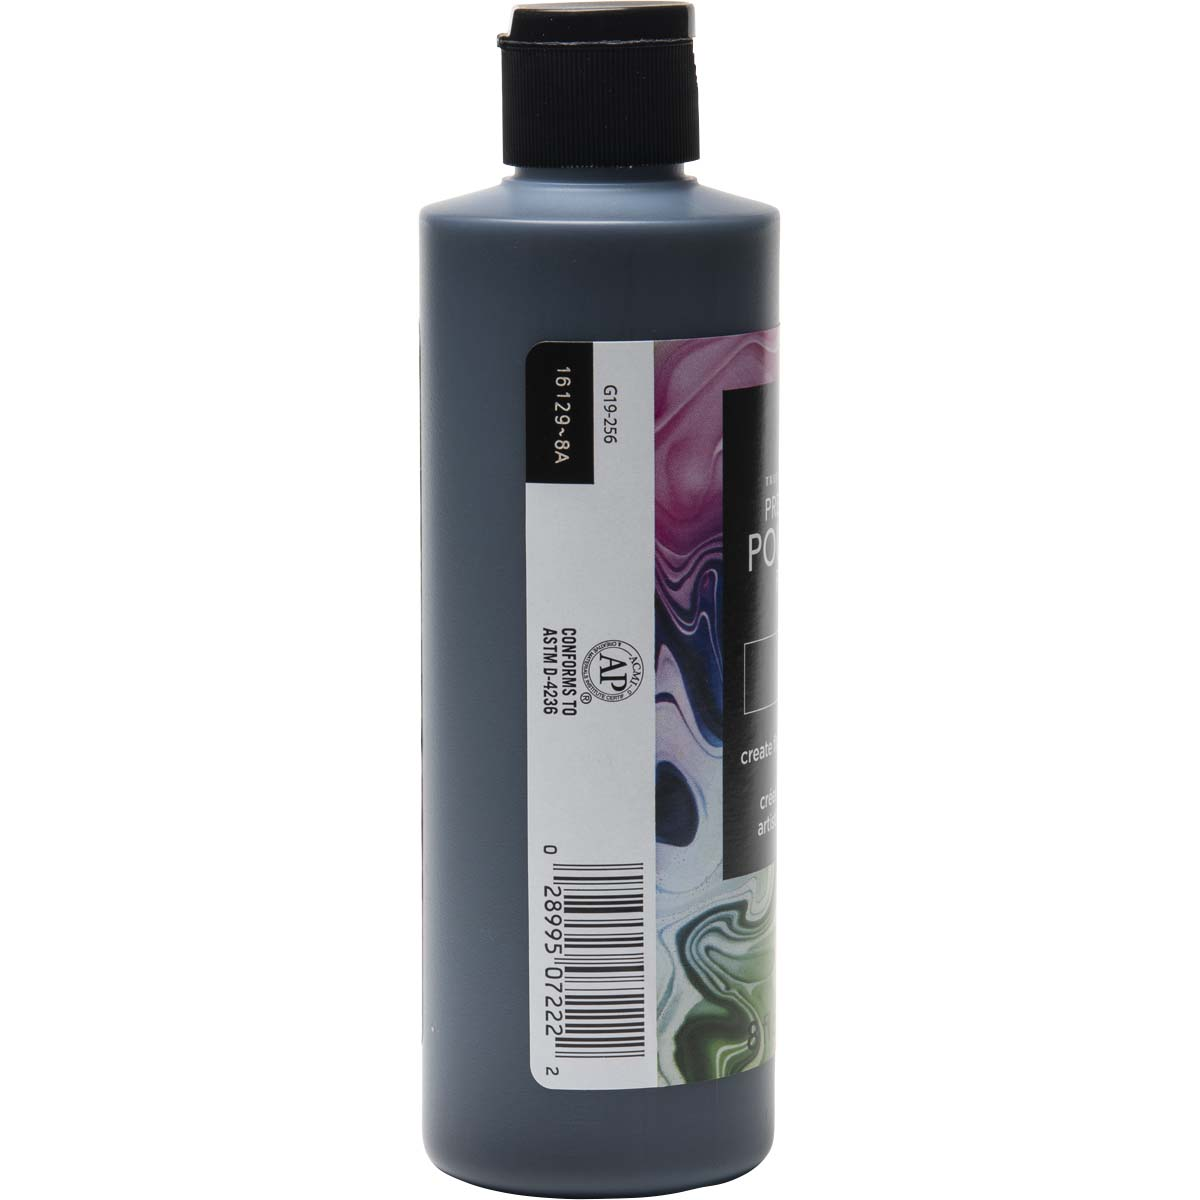 FolkArt ® Pre-mixed Pouring Paint - Black, 8 oz. - 7222